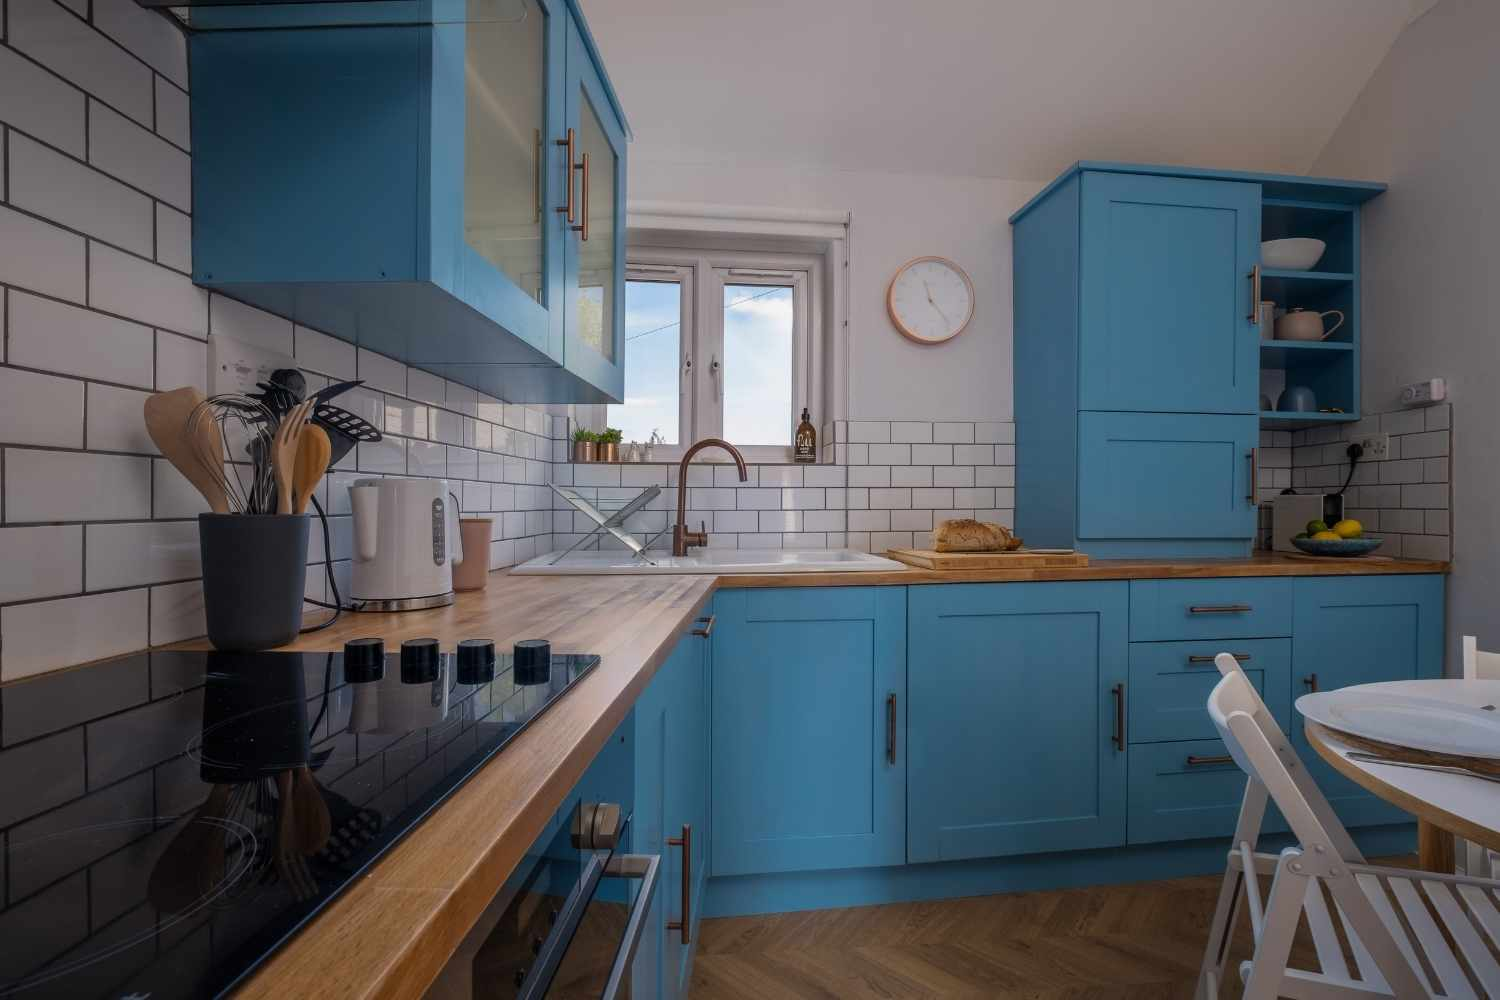 The kitchen has everything you need for your stay